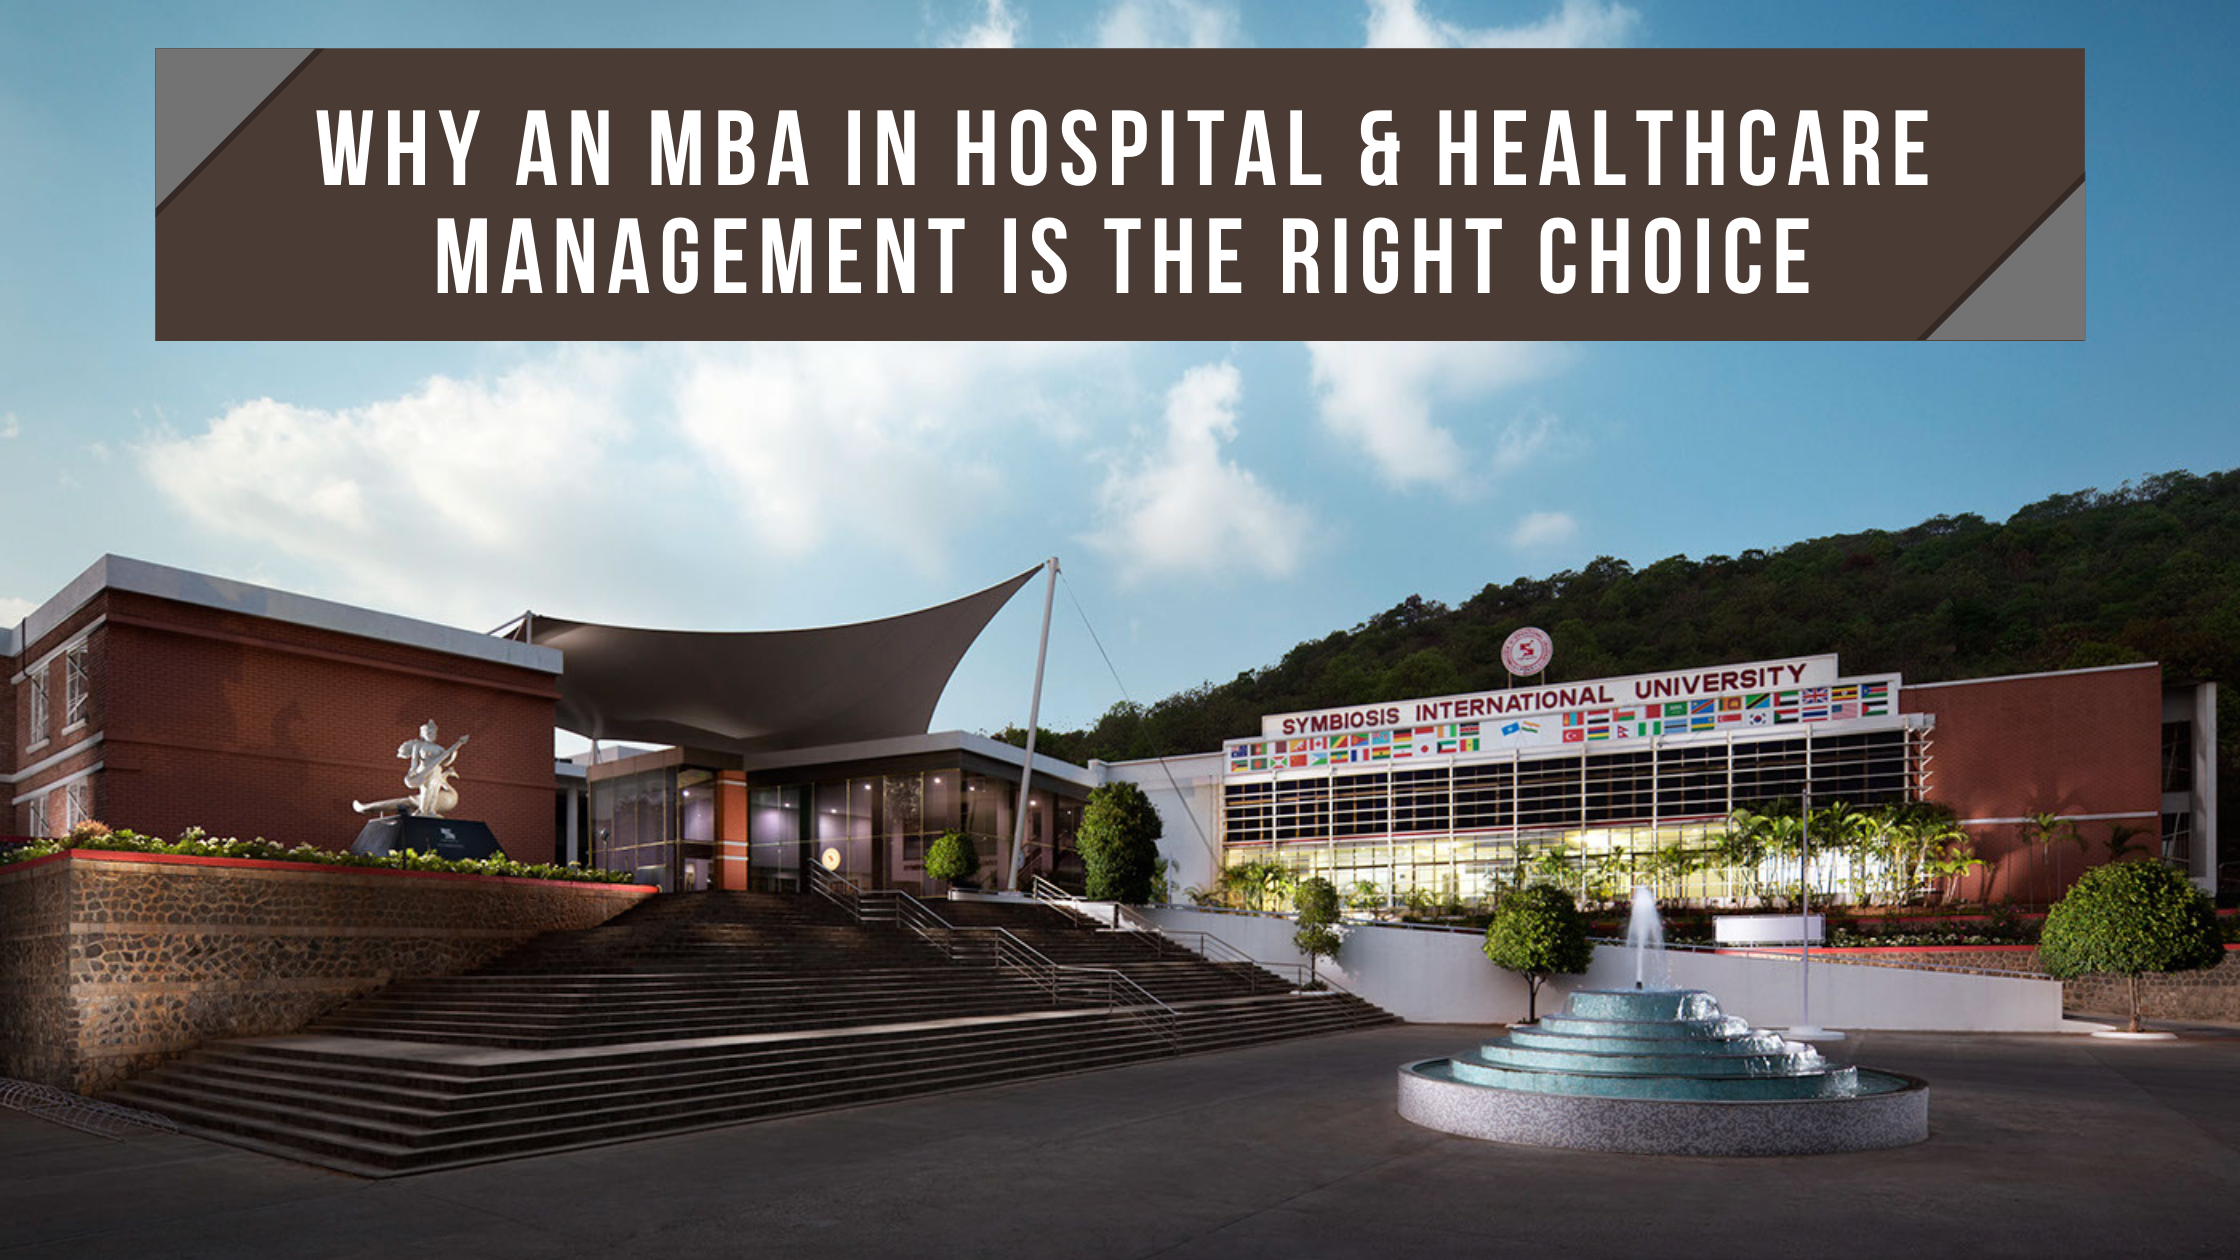 Why an MBA in Hospital & Healthcare Management Is The Right Choice